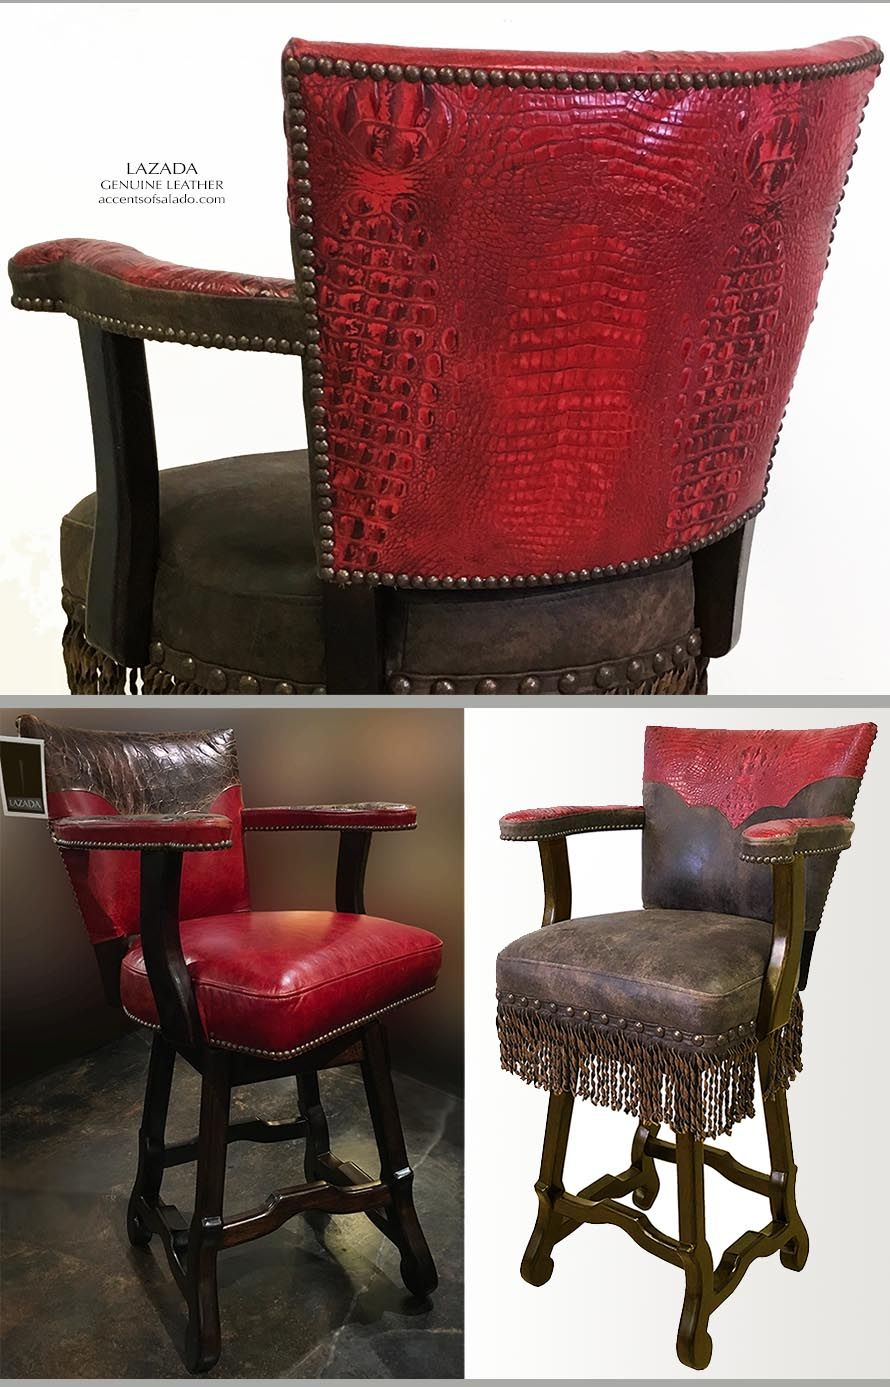 Tremendous Genuine Leather Barstool Online Accents Of Salado In 2019 Short Links Chair Design For Home Short Linksinfo